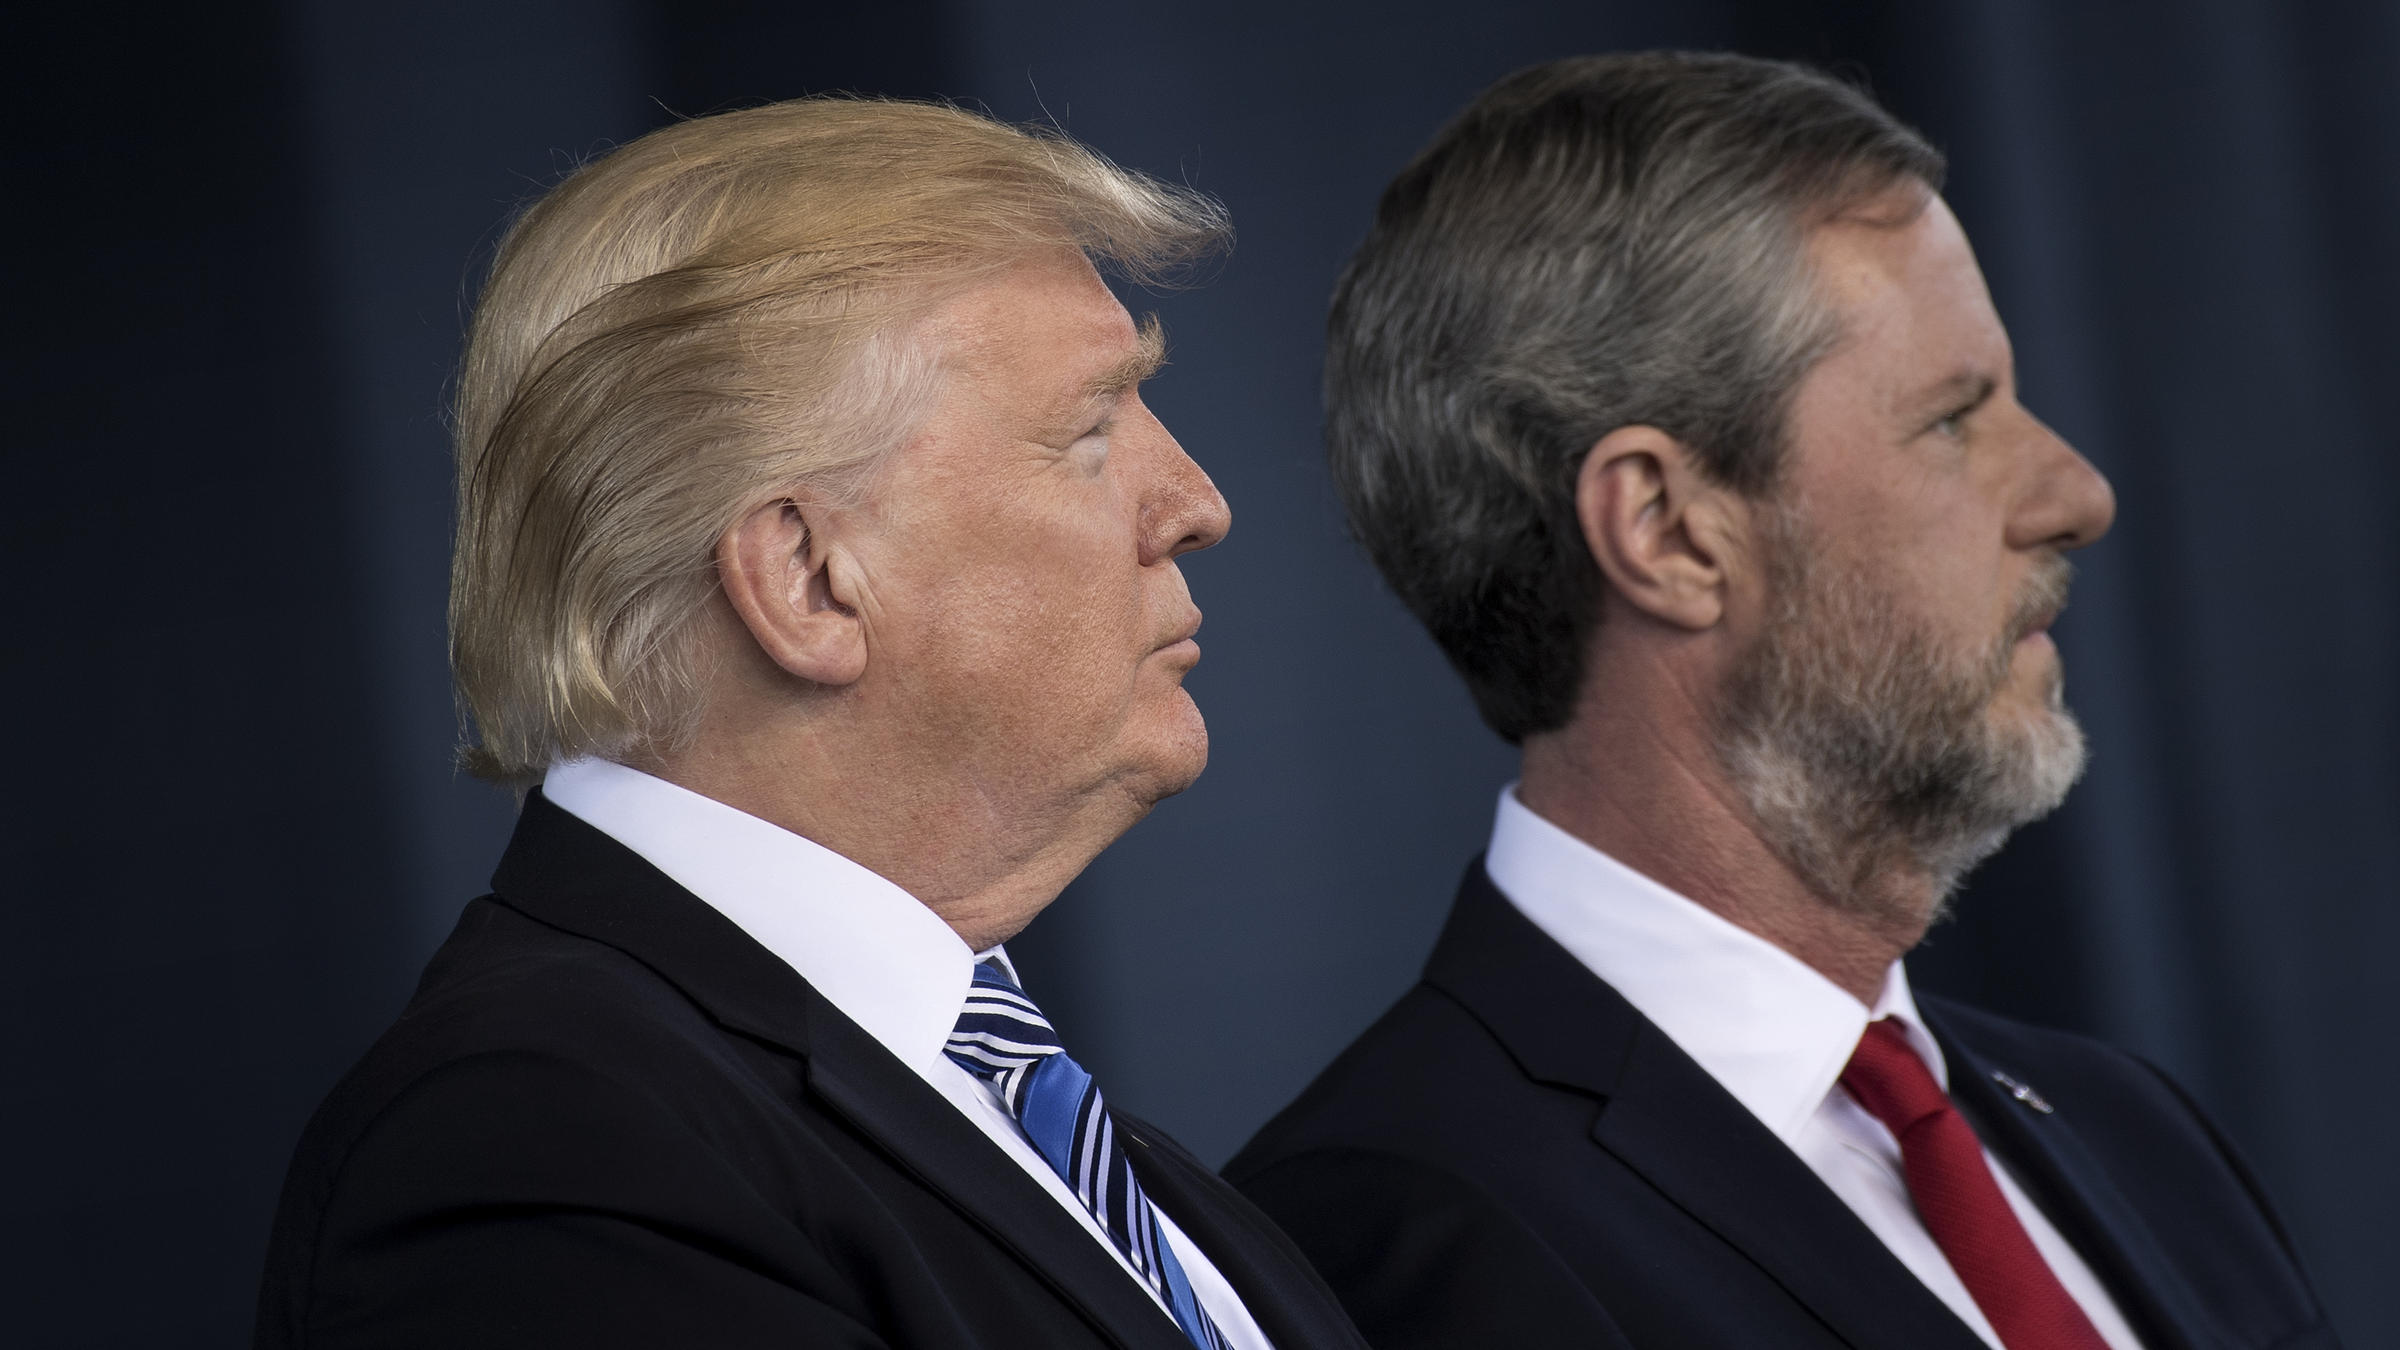 One member of Trump's Evangelical Advisory Board has seen enough